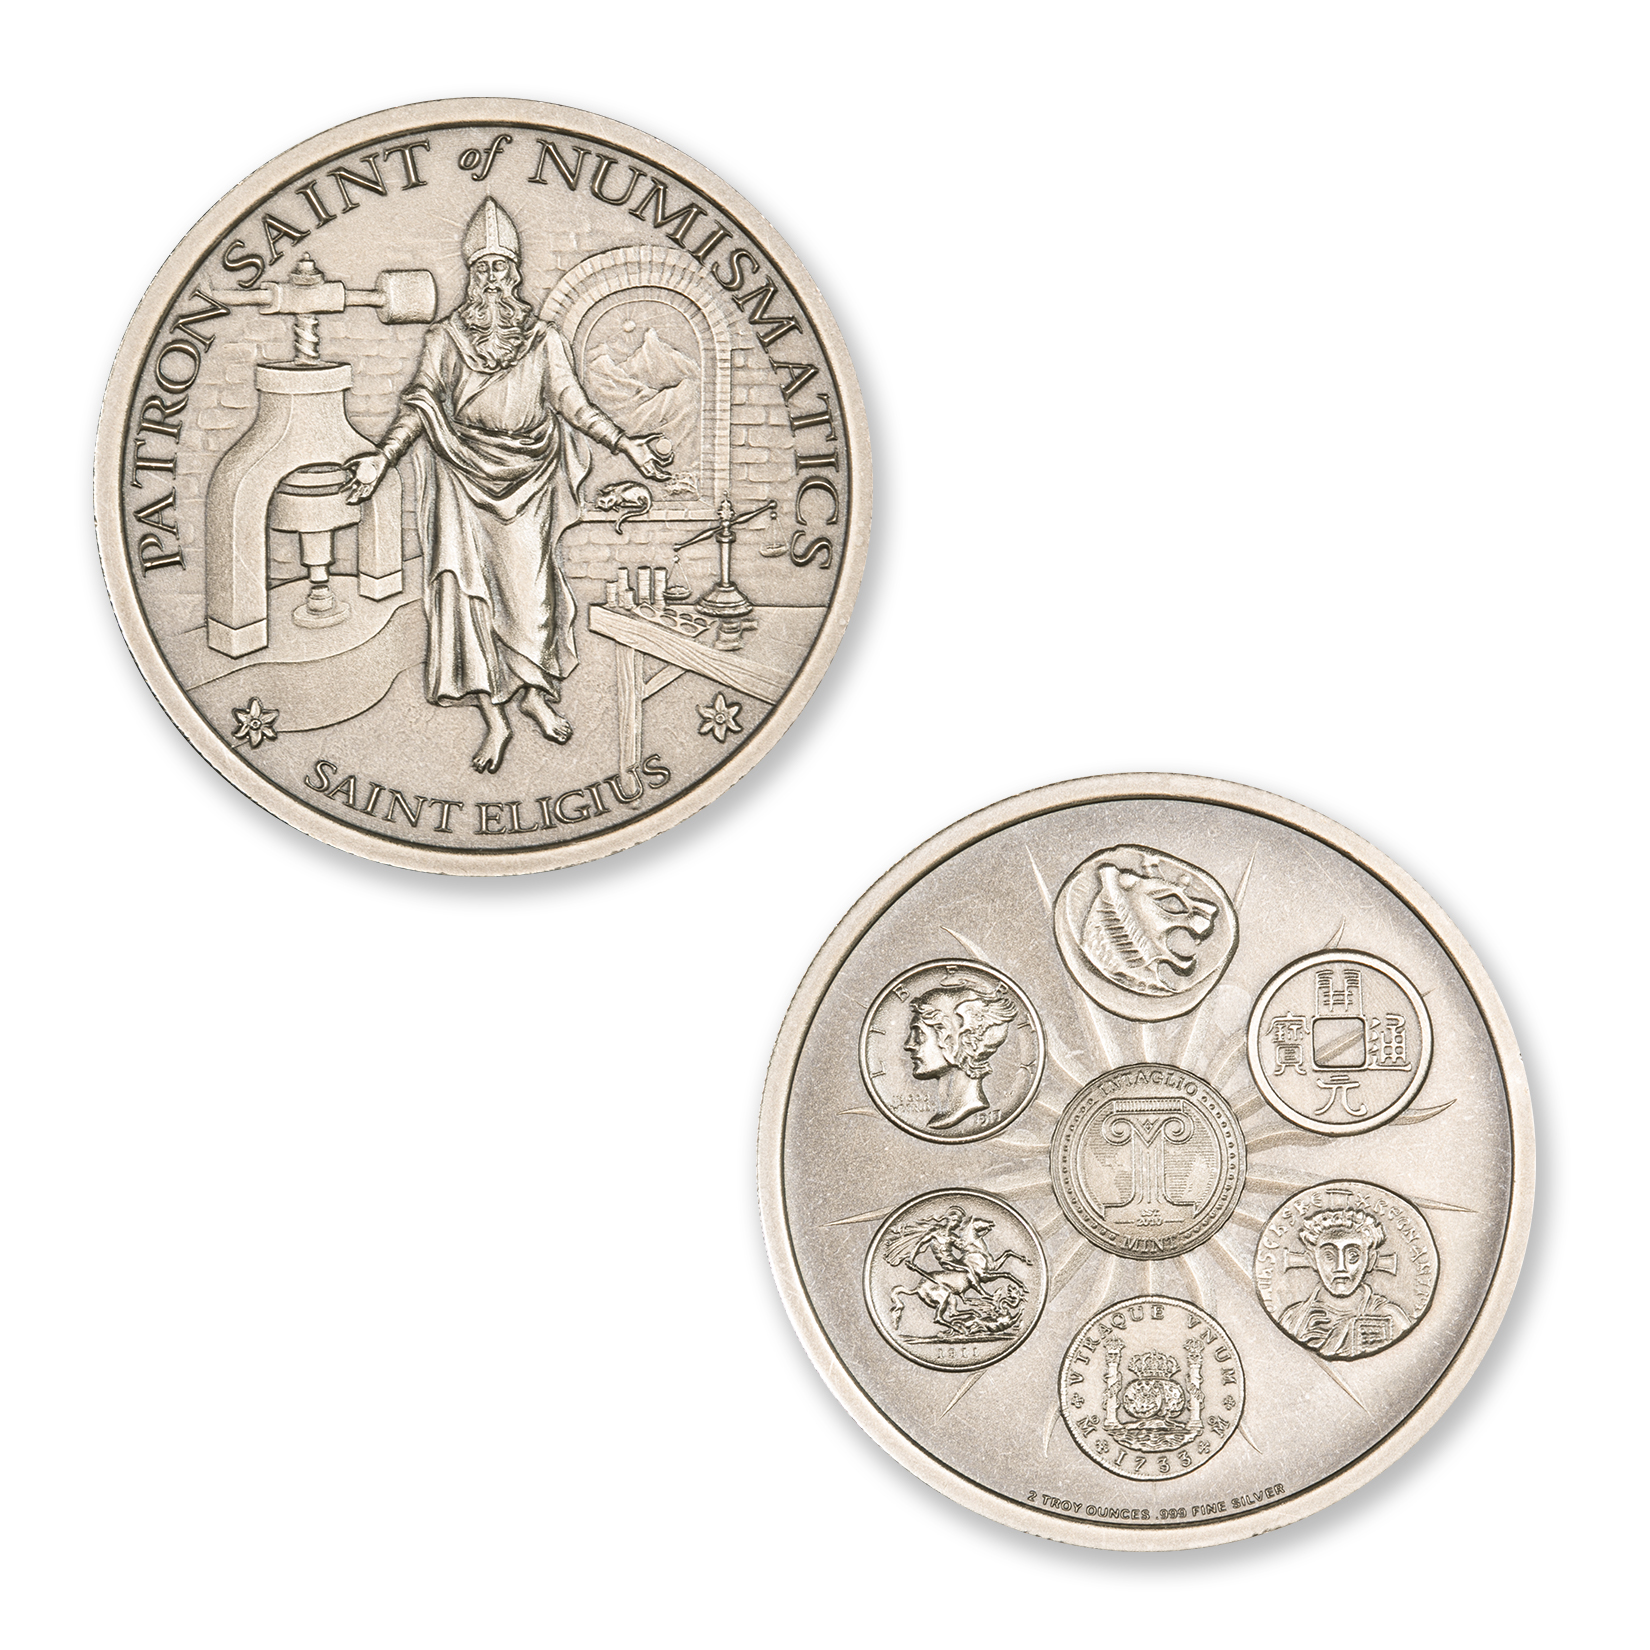 SAINT ELIGIUS – 2 TROY OUNCE – 39MM (ANTIQUED)